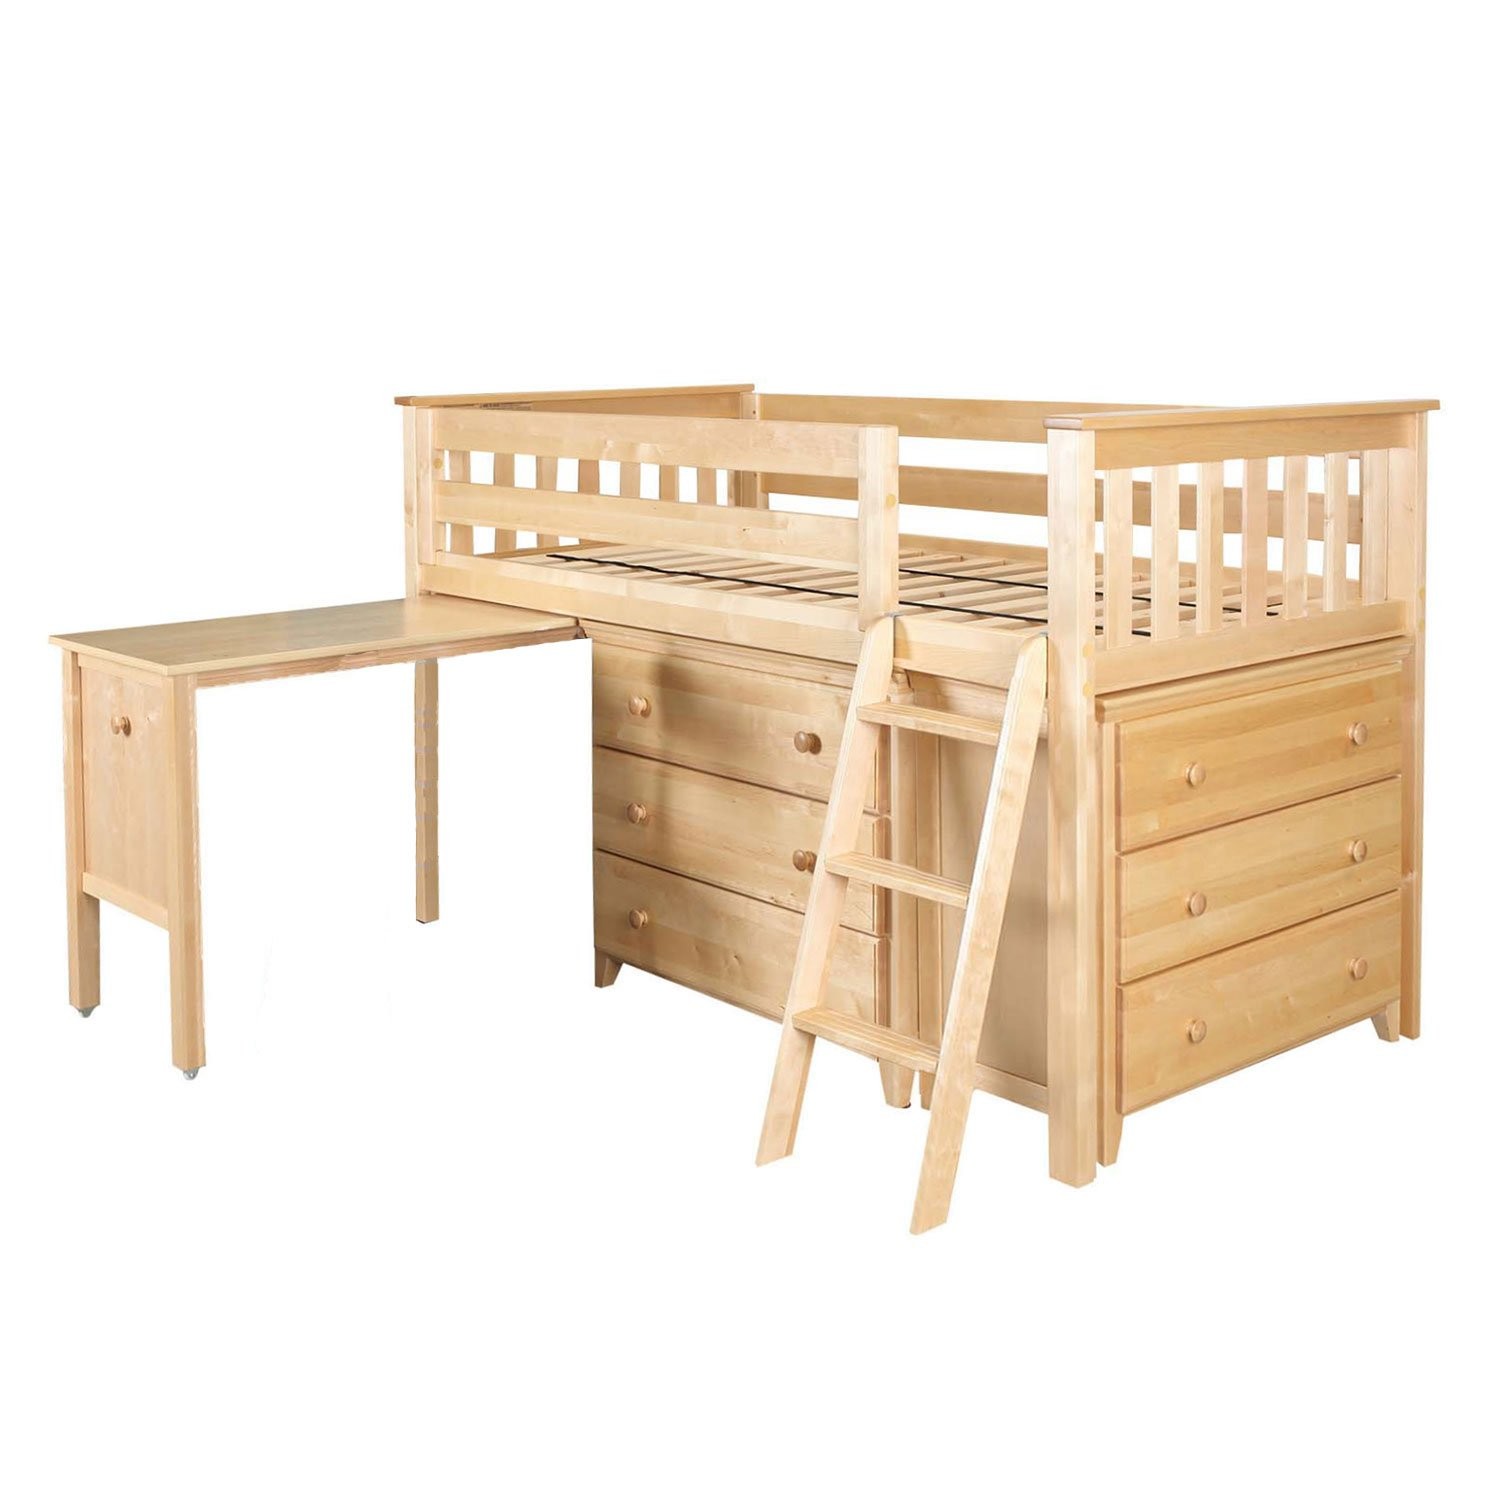 Max & Lily 17-5284-001 Solid Wood Storage Loft Bed with Dresser, Bookcase and Desk, Twin, Natural